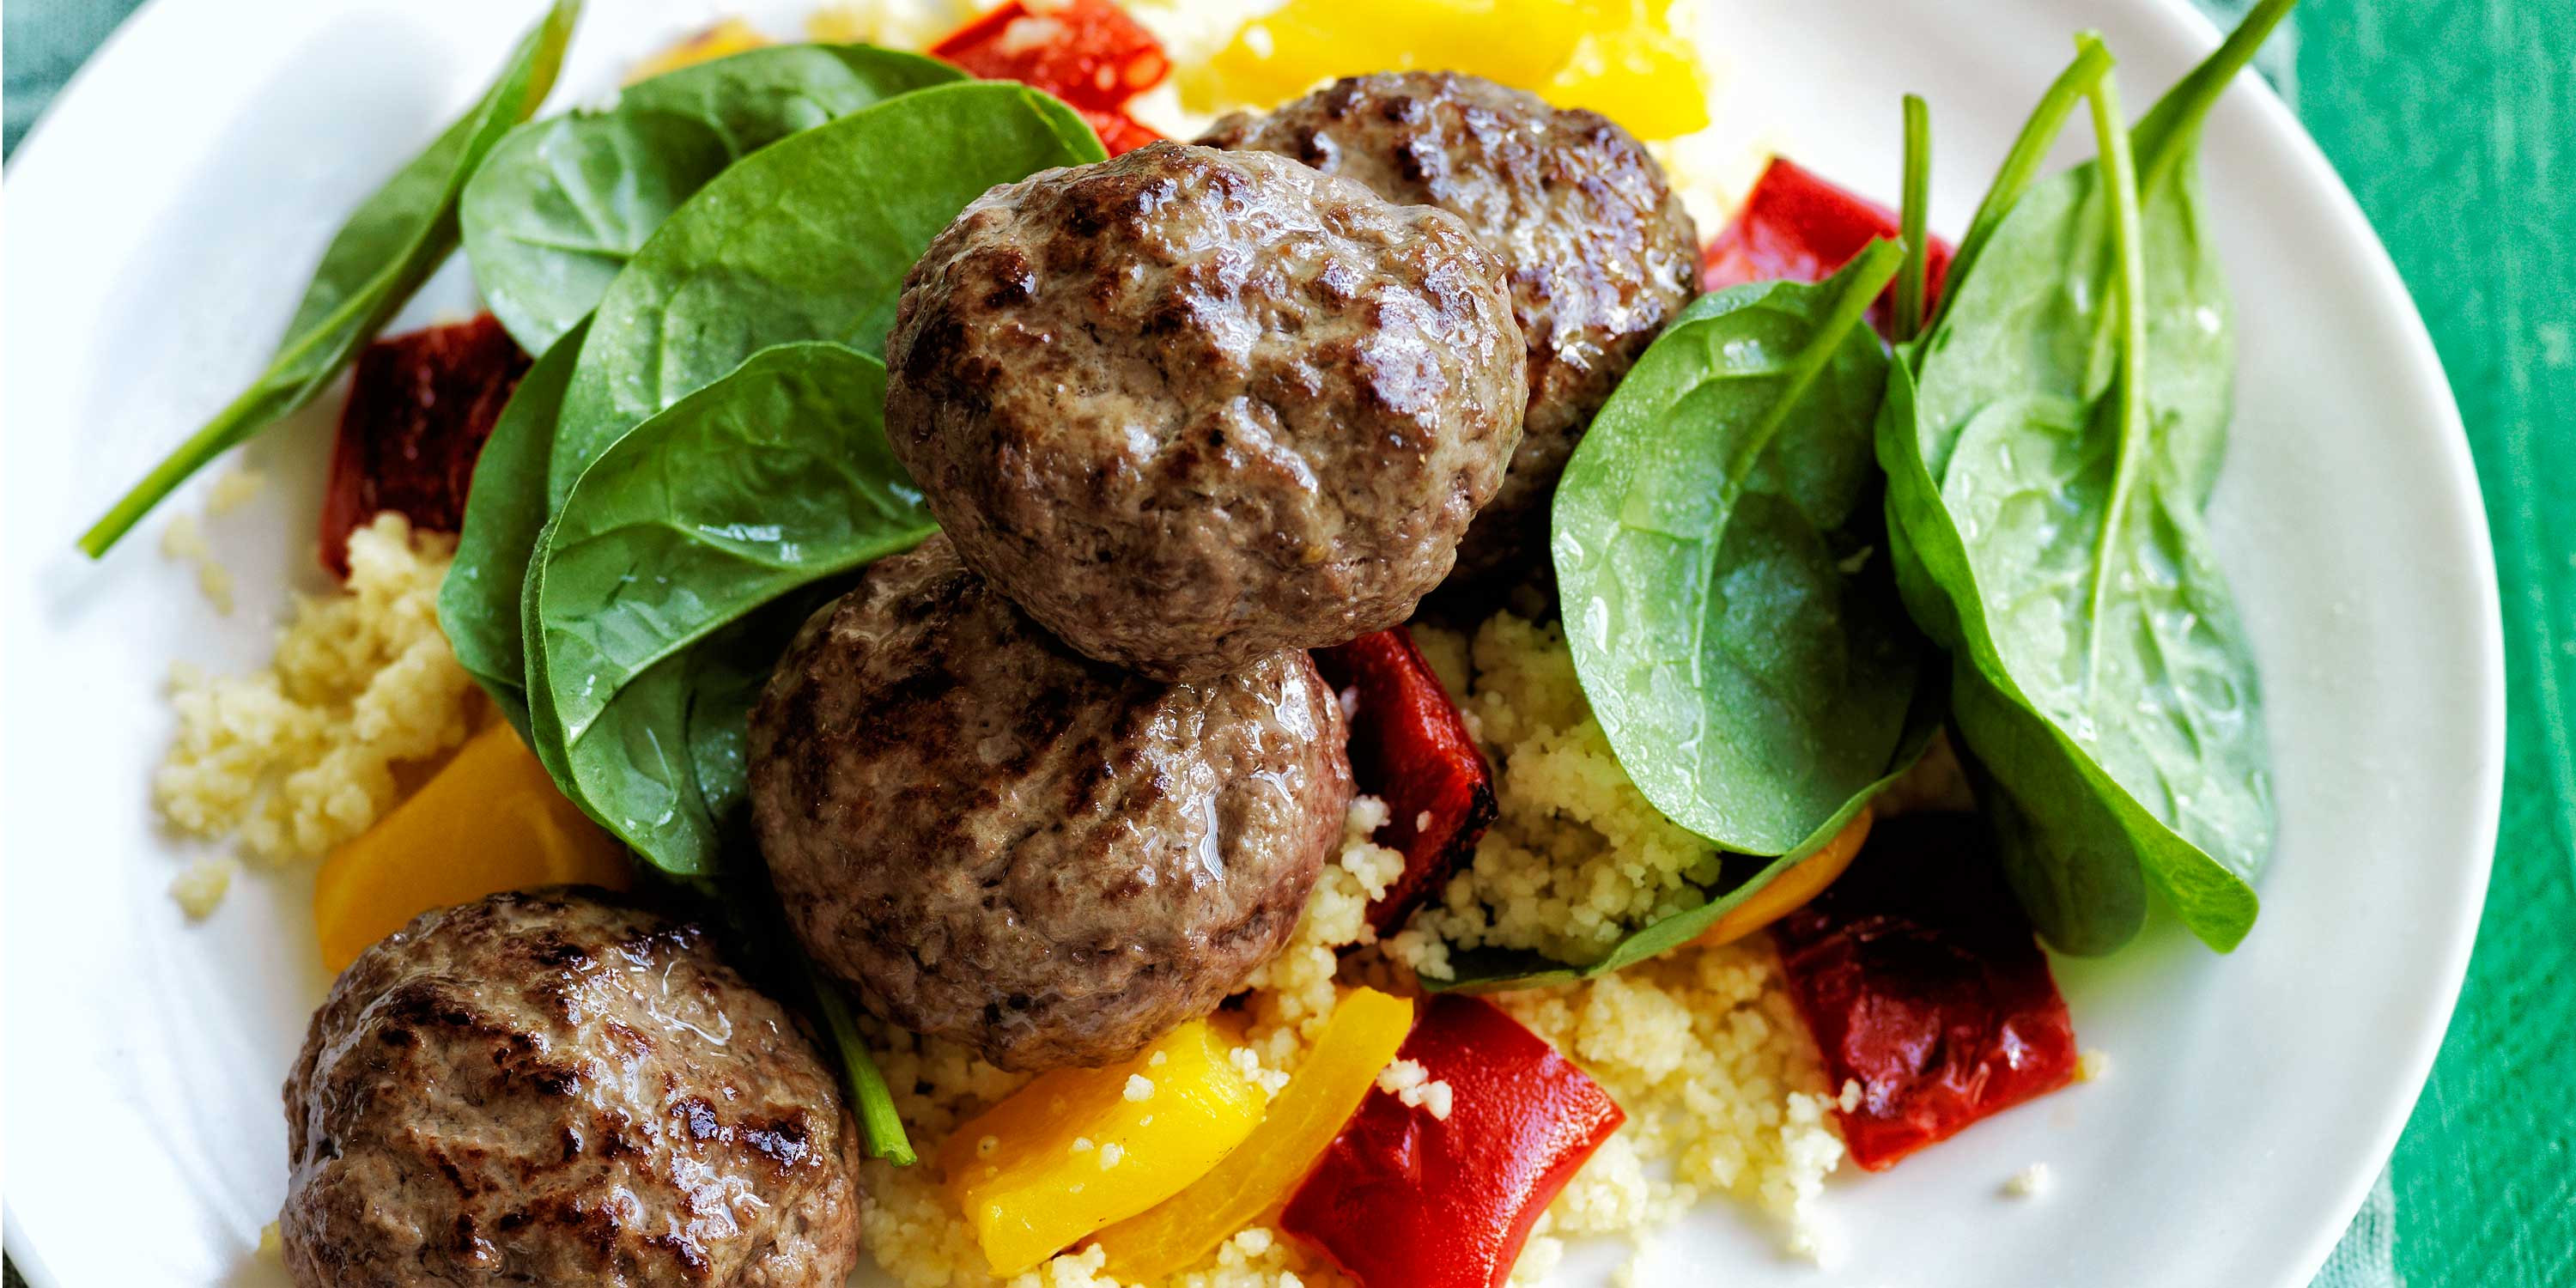 Ground Beef Healthy Recipes  55 Easy Ground Beef Recipes Healthy Recipes with Ground